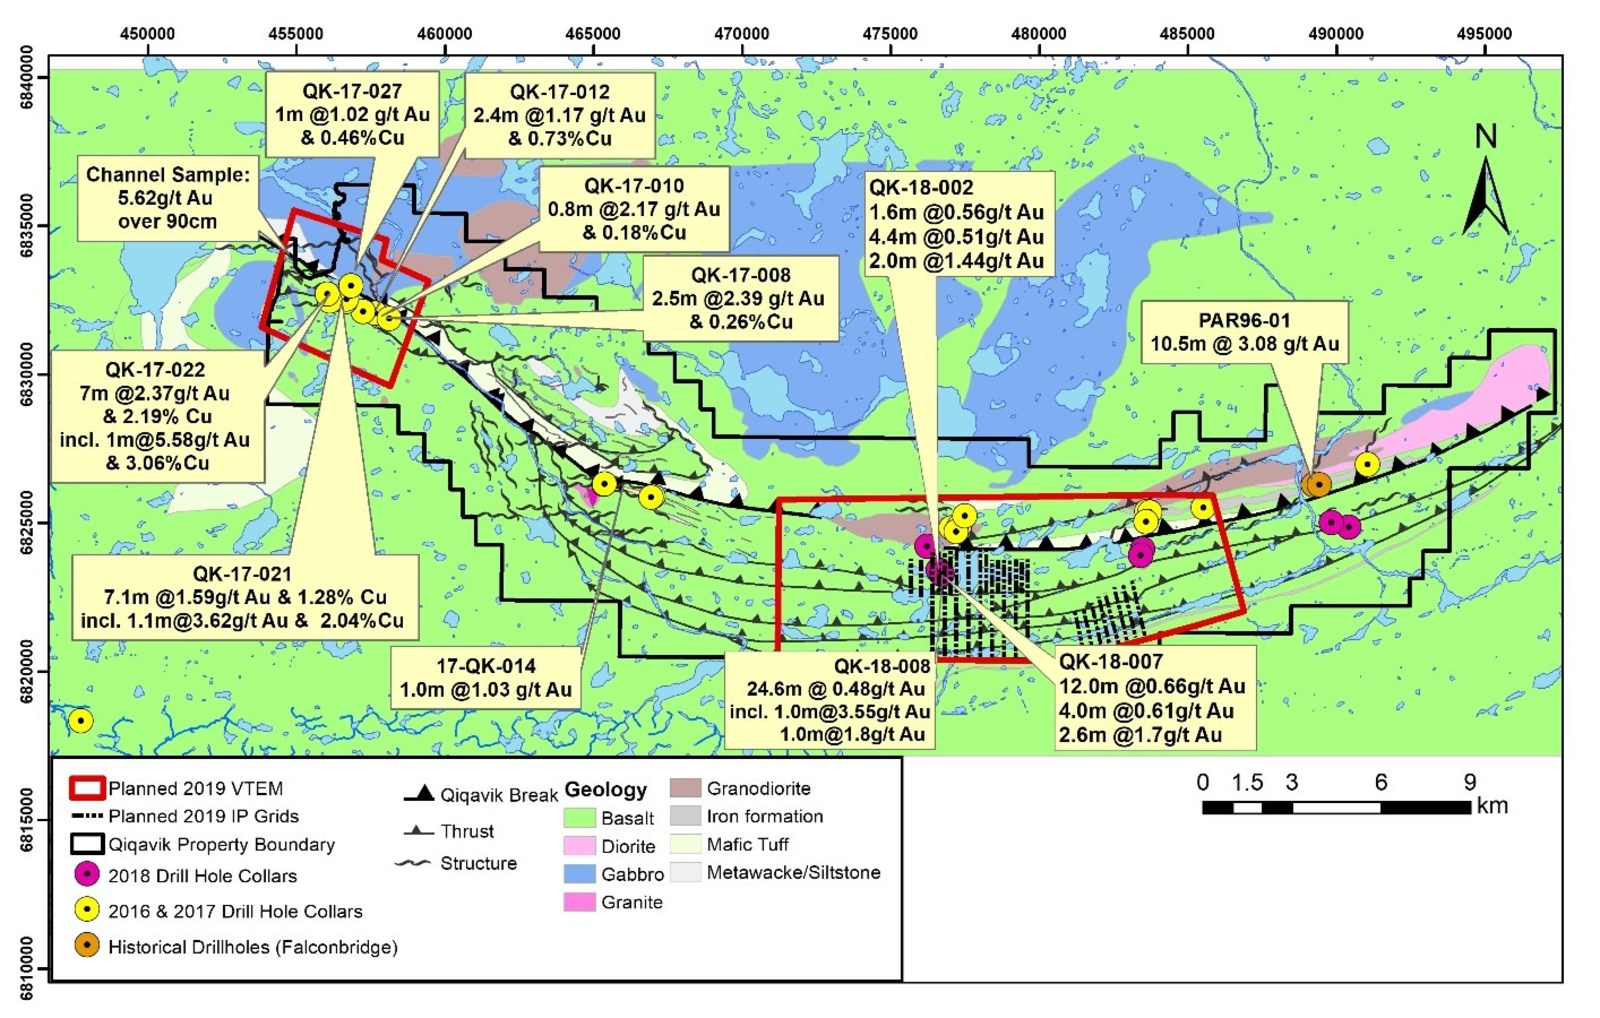 Figure 2: 2016-2018 Significant Drilling Results and Planned Geophysical Survey Coverage Area on the Qiqavik Property